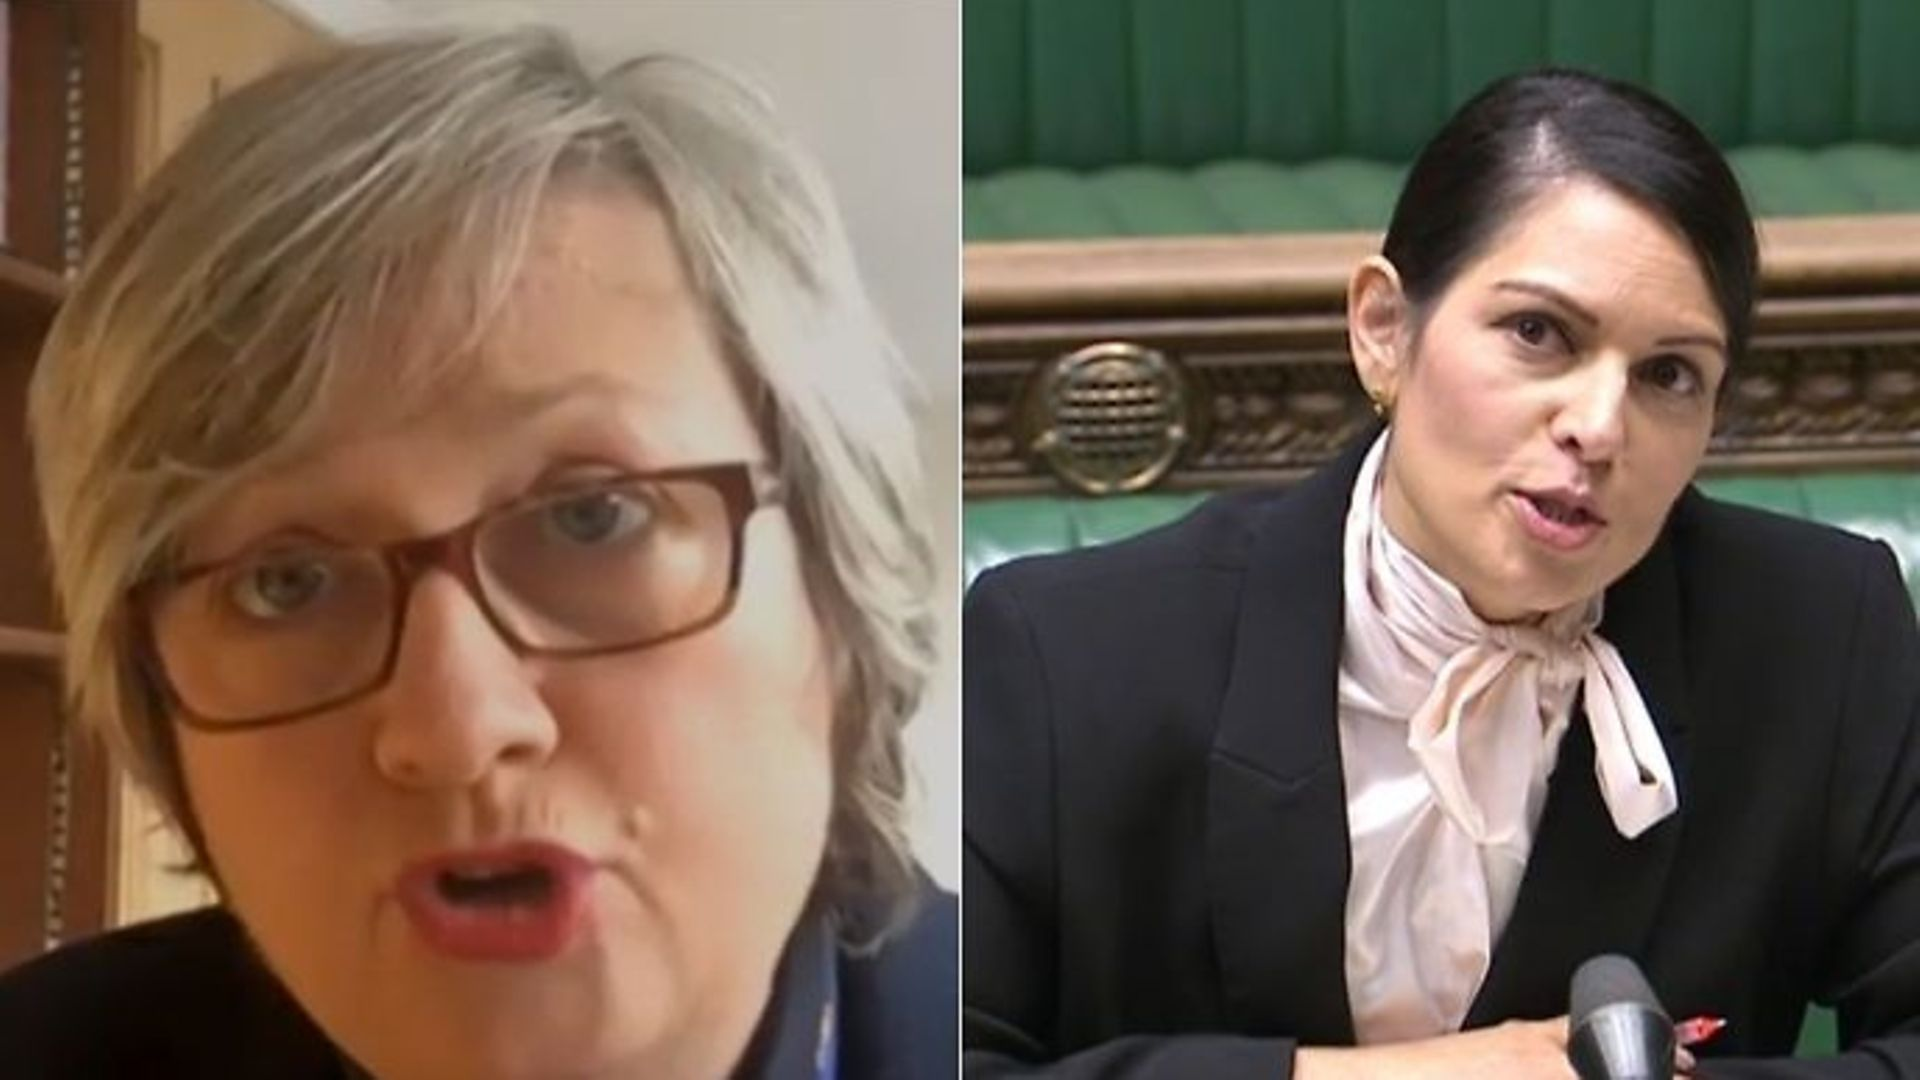 The SNP's Joanna Cherry (L) and Priti Patel in the House of Commons - Credit: Parliamentlive.tv